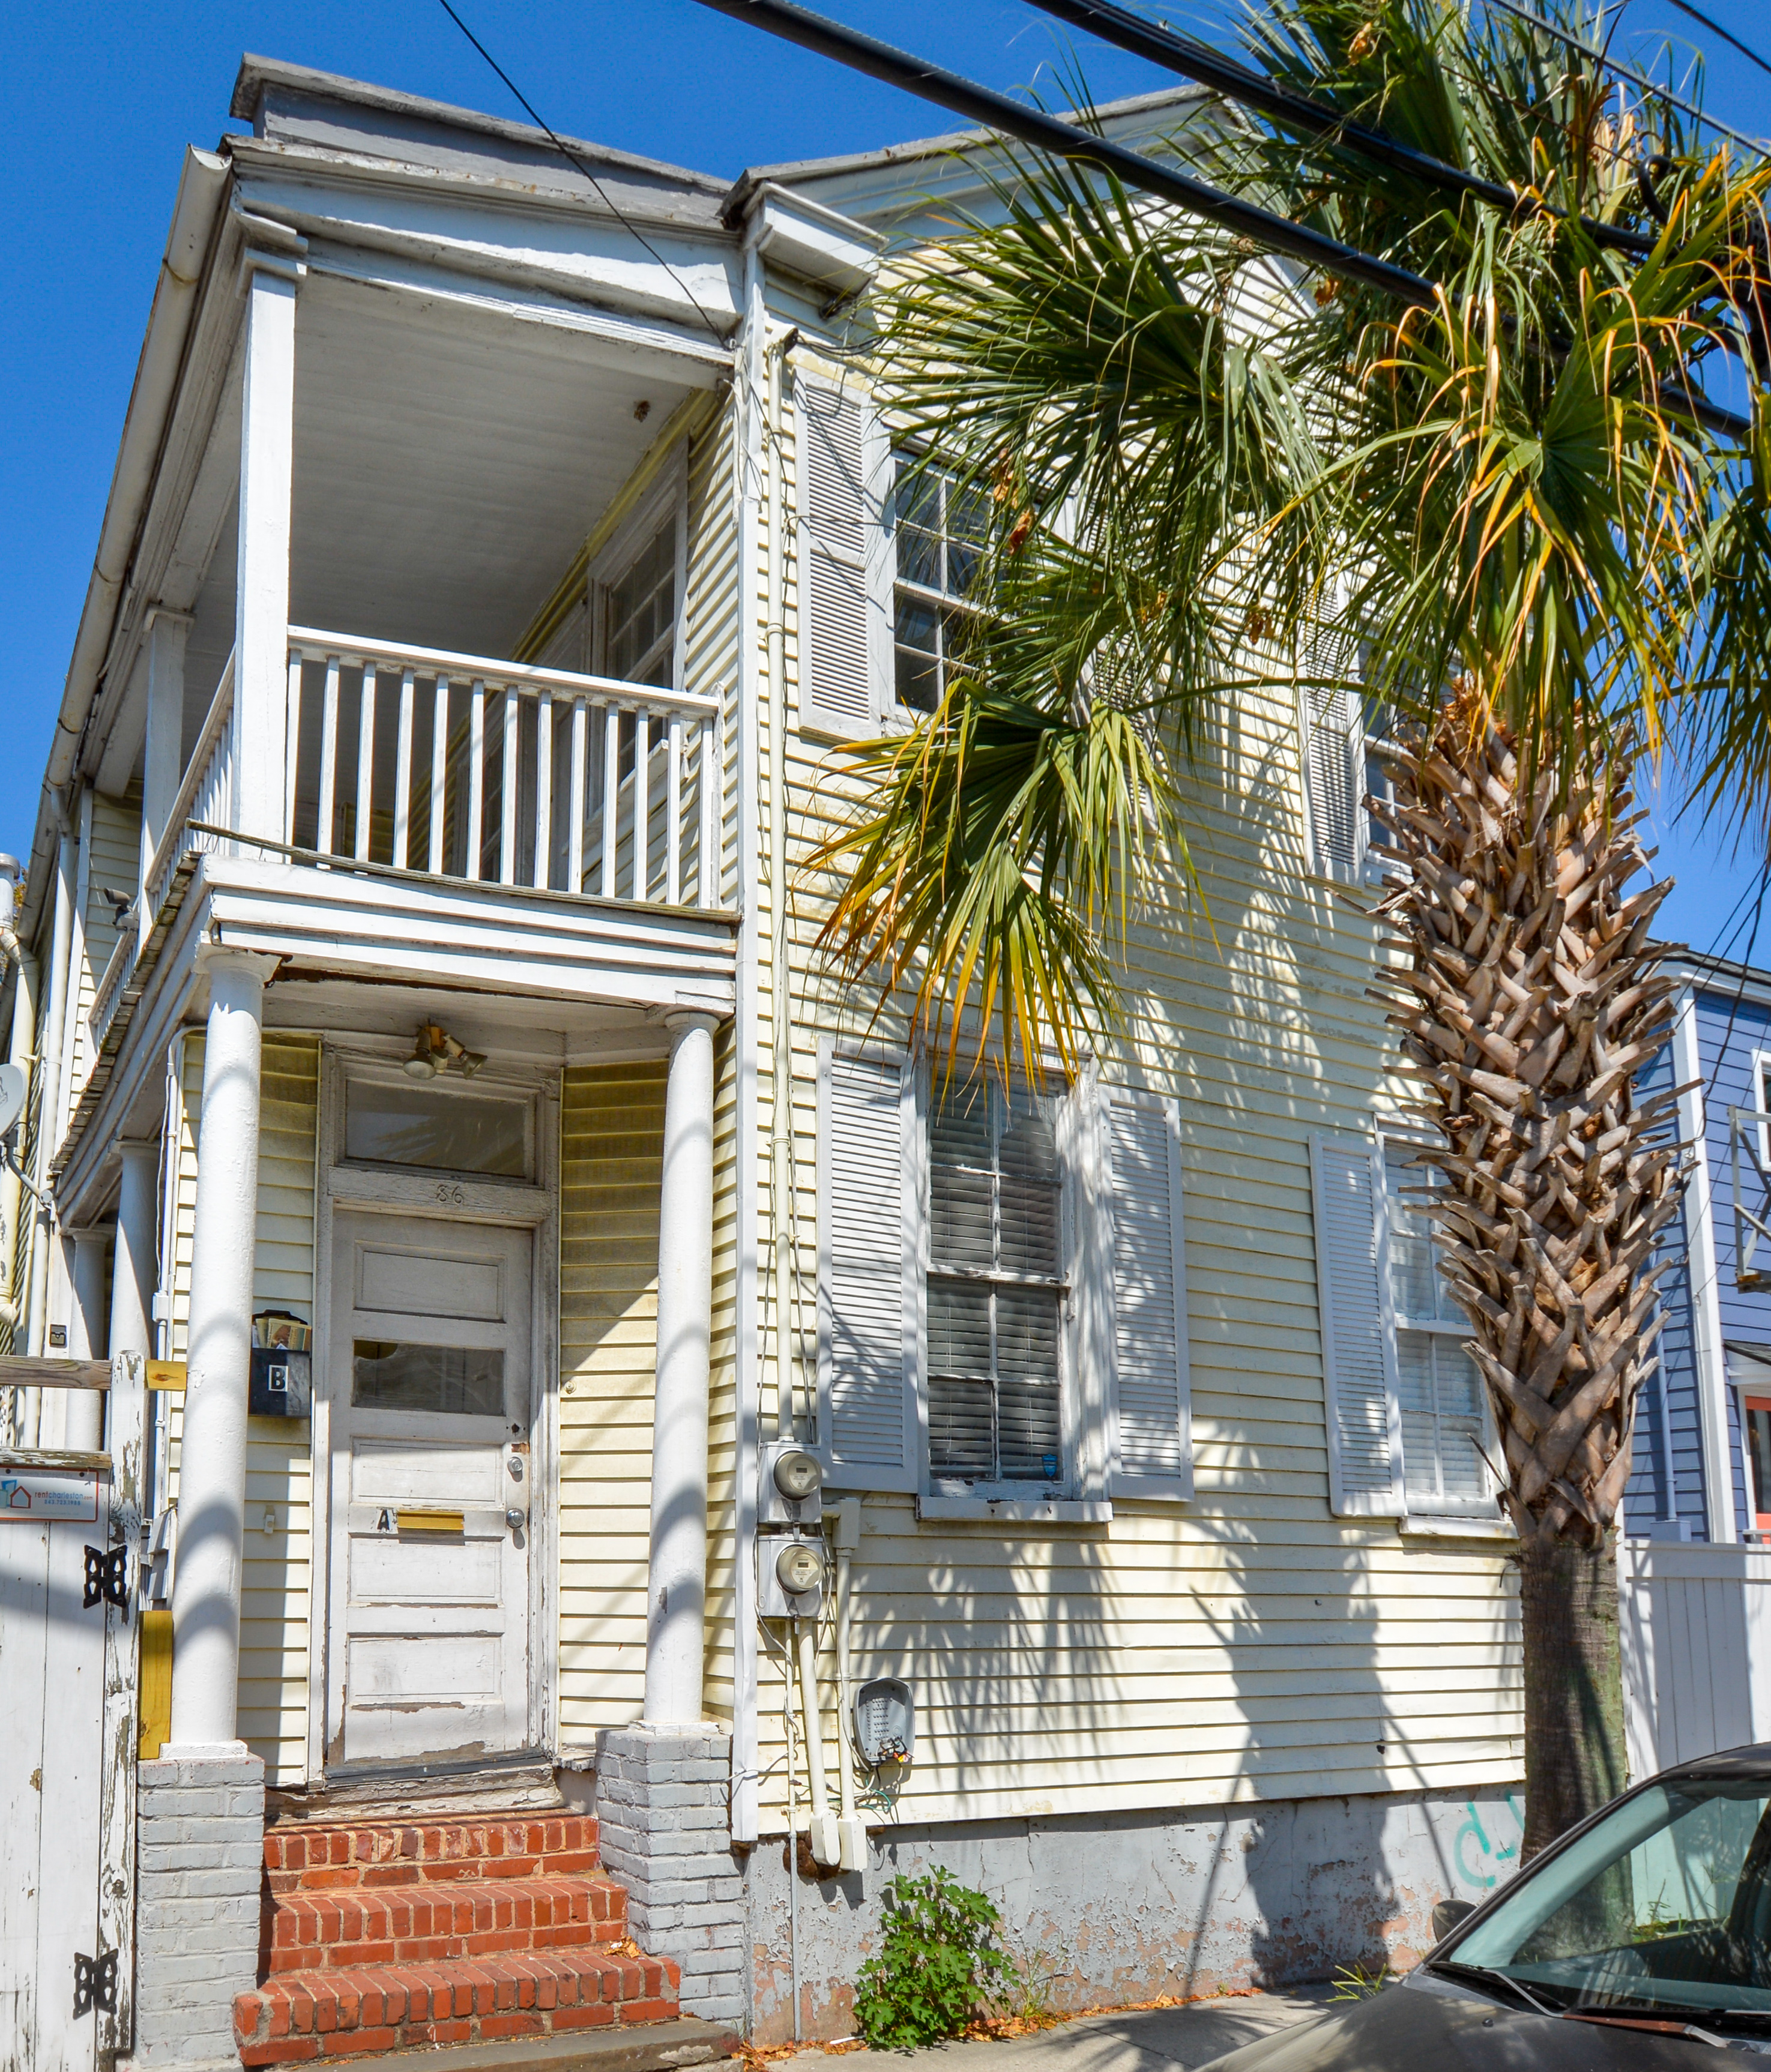 Apartments For Rent In South Carolina: South Carolina Houses For Rent In South Carolina Homes For